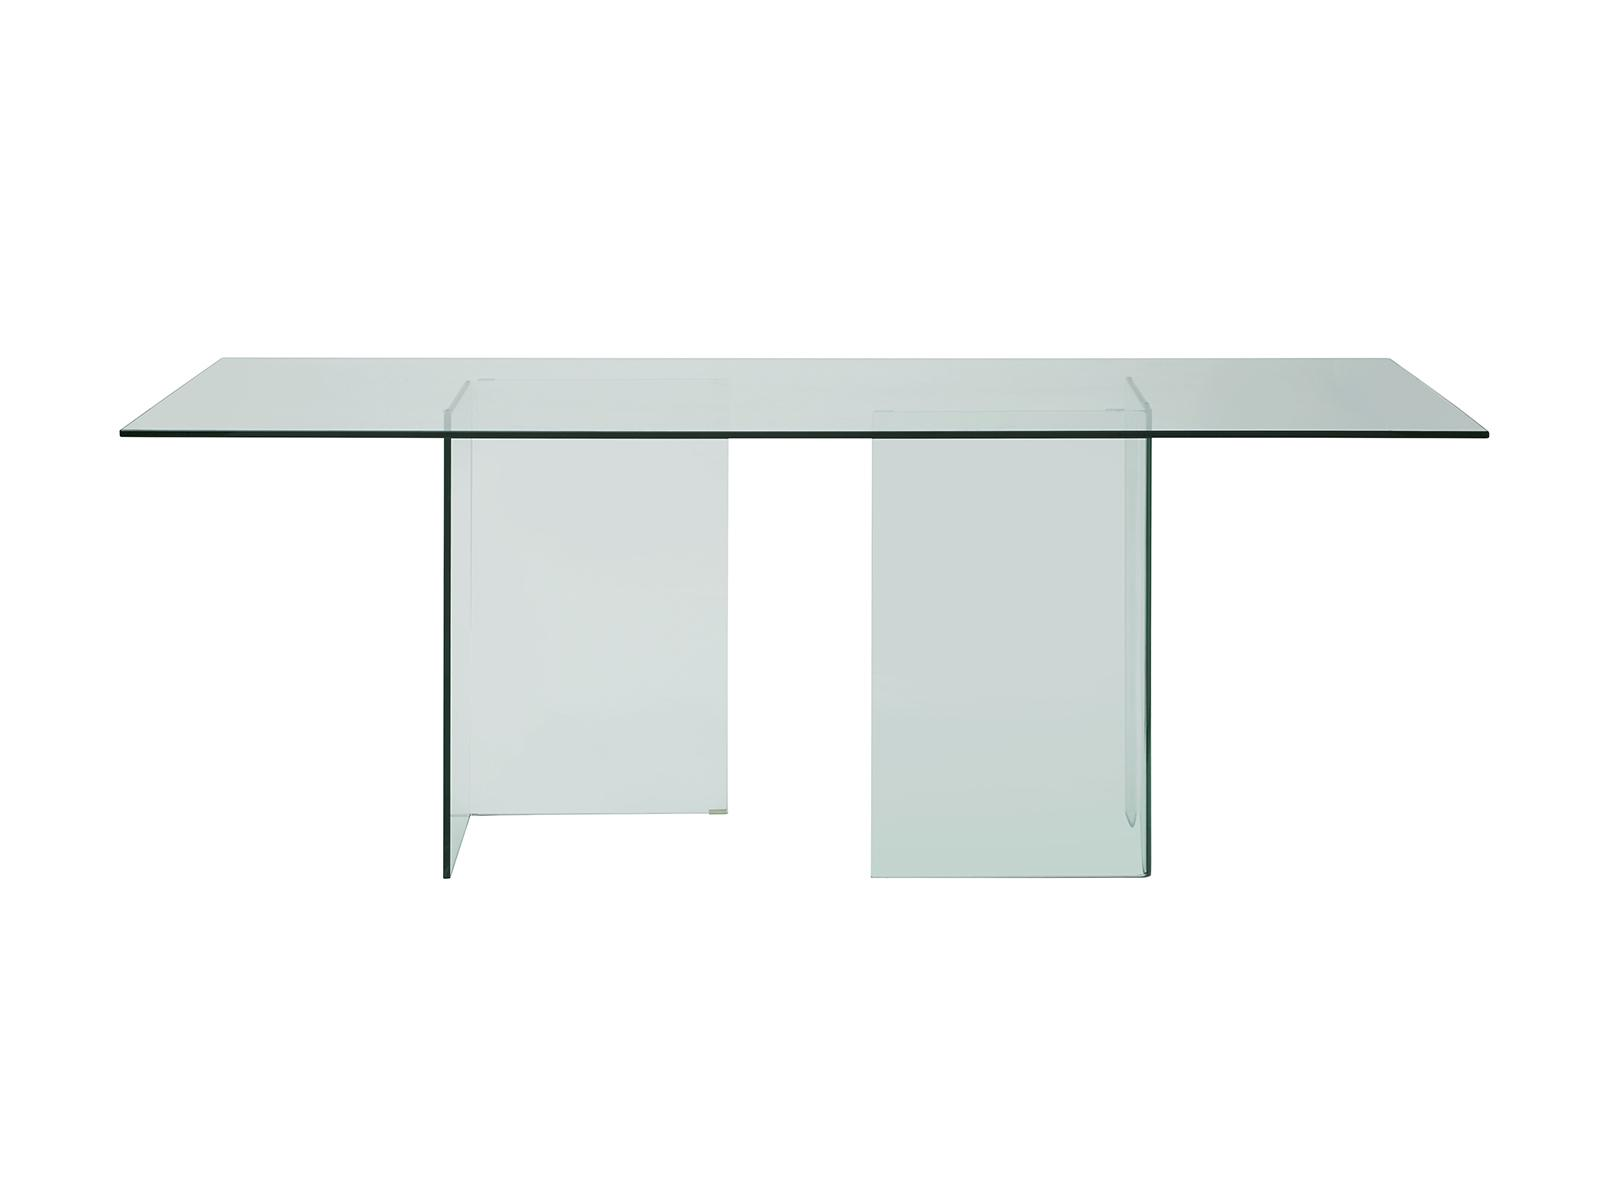 Swell Casabianca Miami Modern Clear Glass Rectangle Dining Table Interior Design Ideas Philsoteloinfo